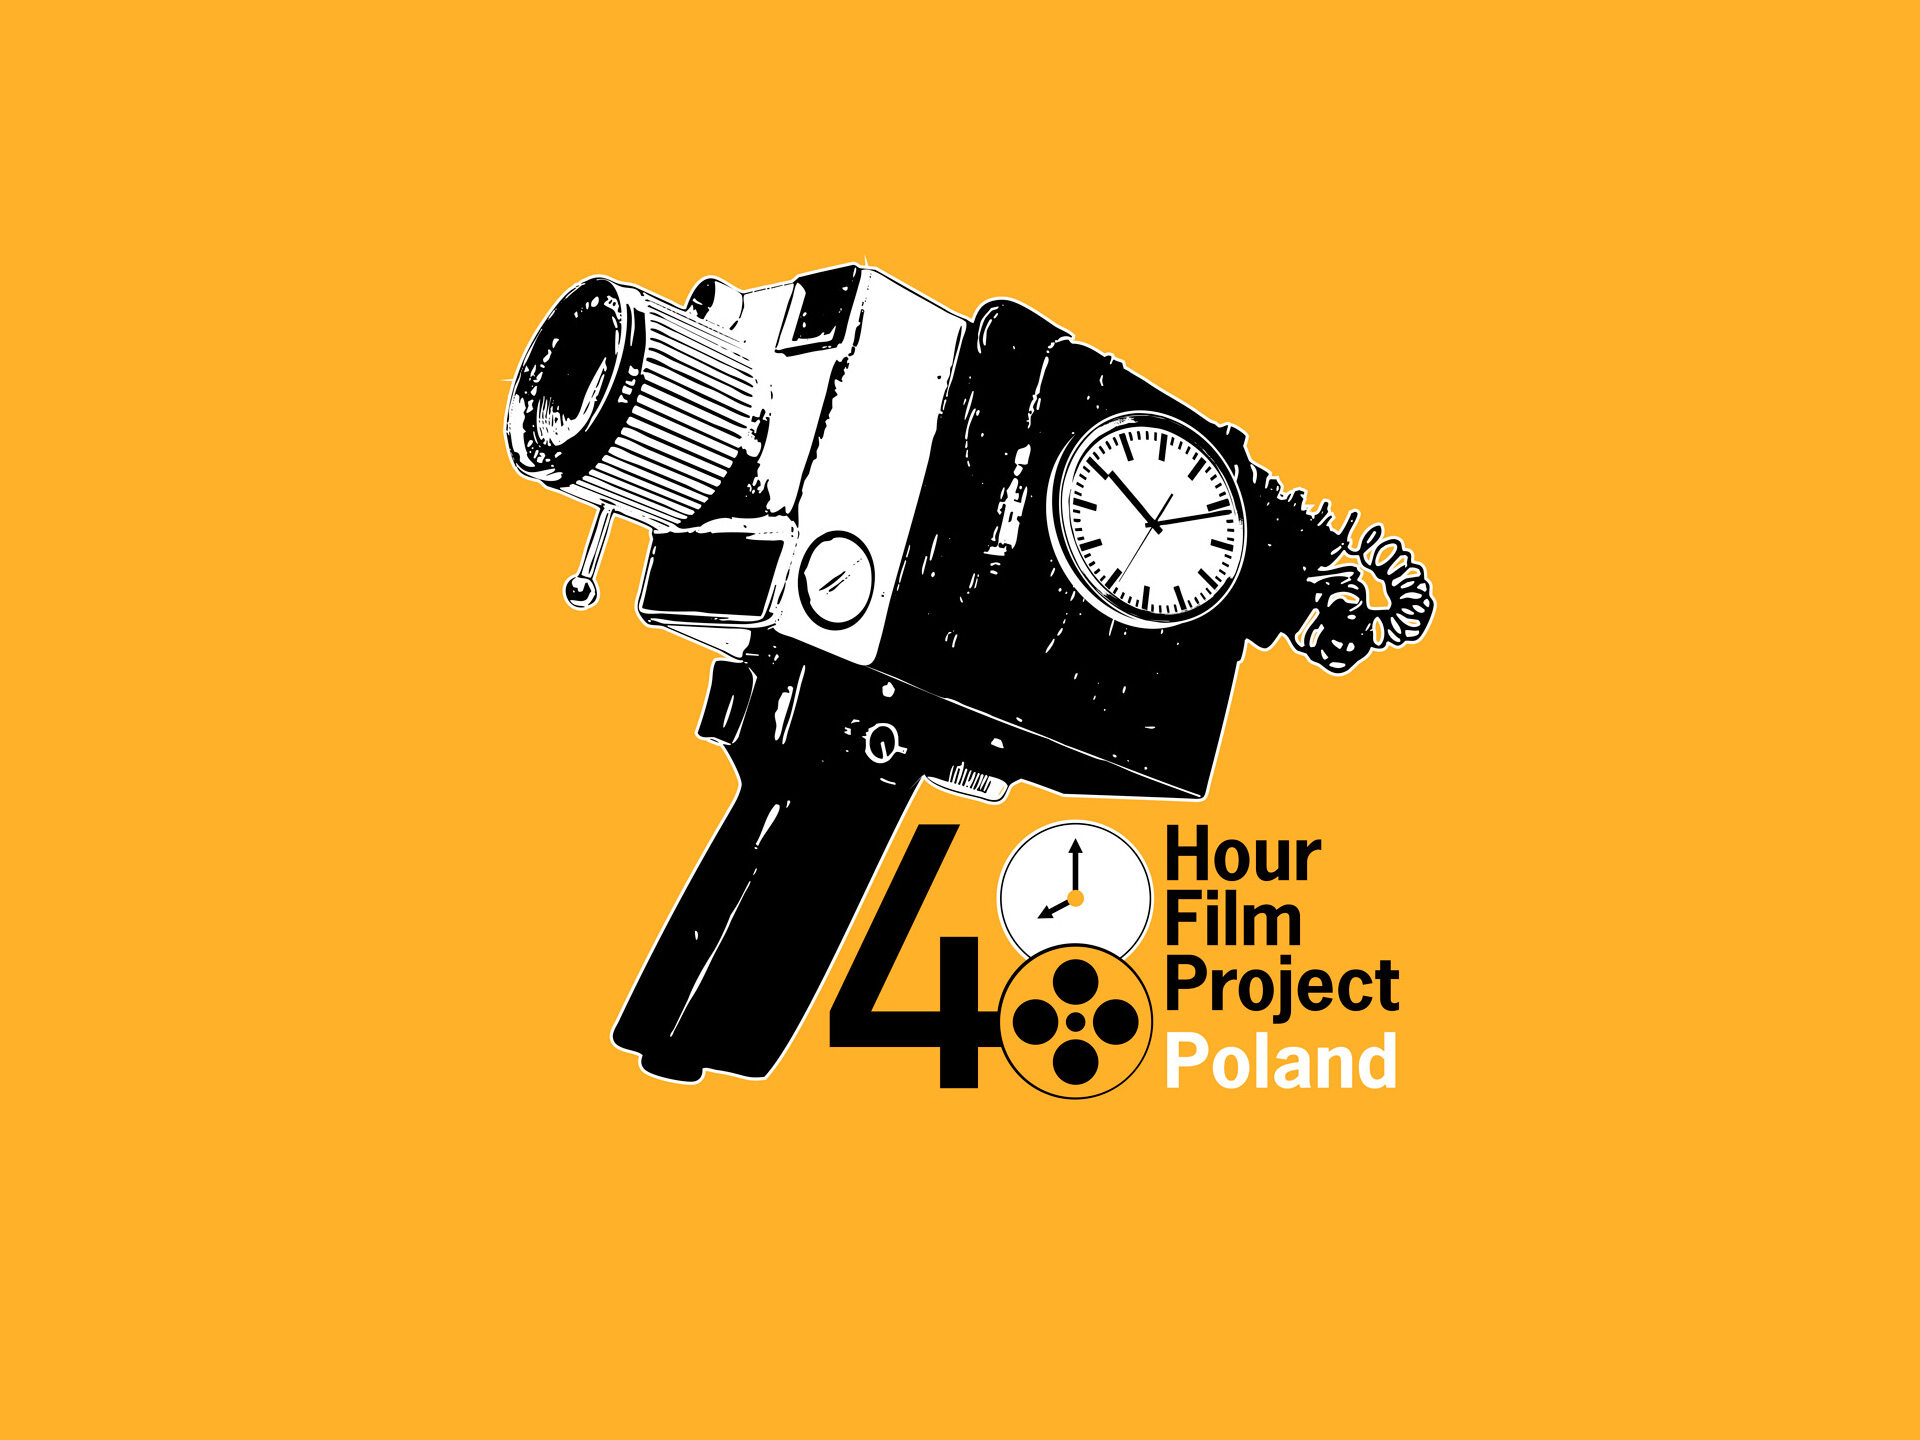 48 Hour Film Project Poland